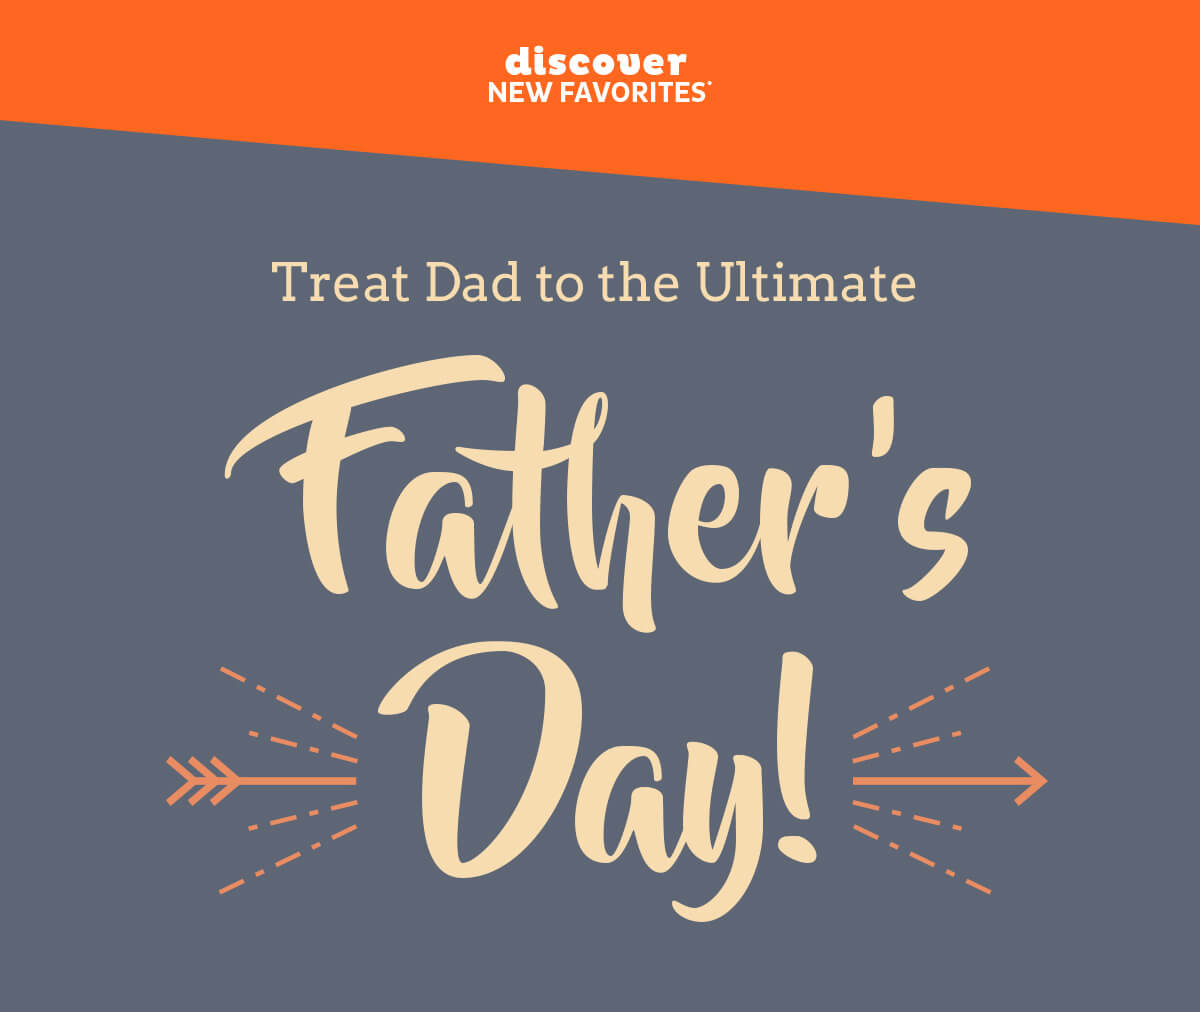 Treat Dad to the Ultimate Father's Day!